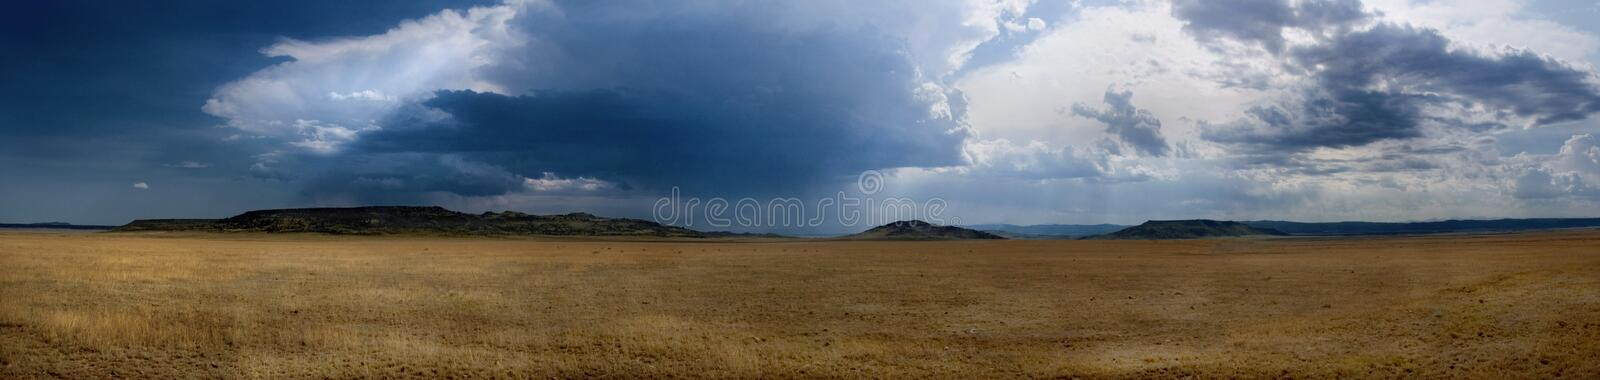 Forming Thunderstorm Over Raton New Mexico royalty free stock photos